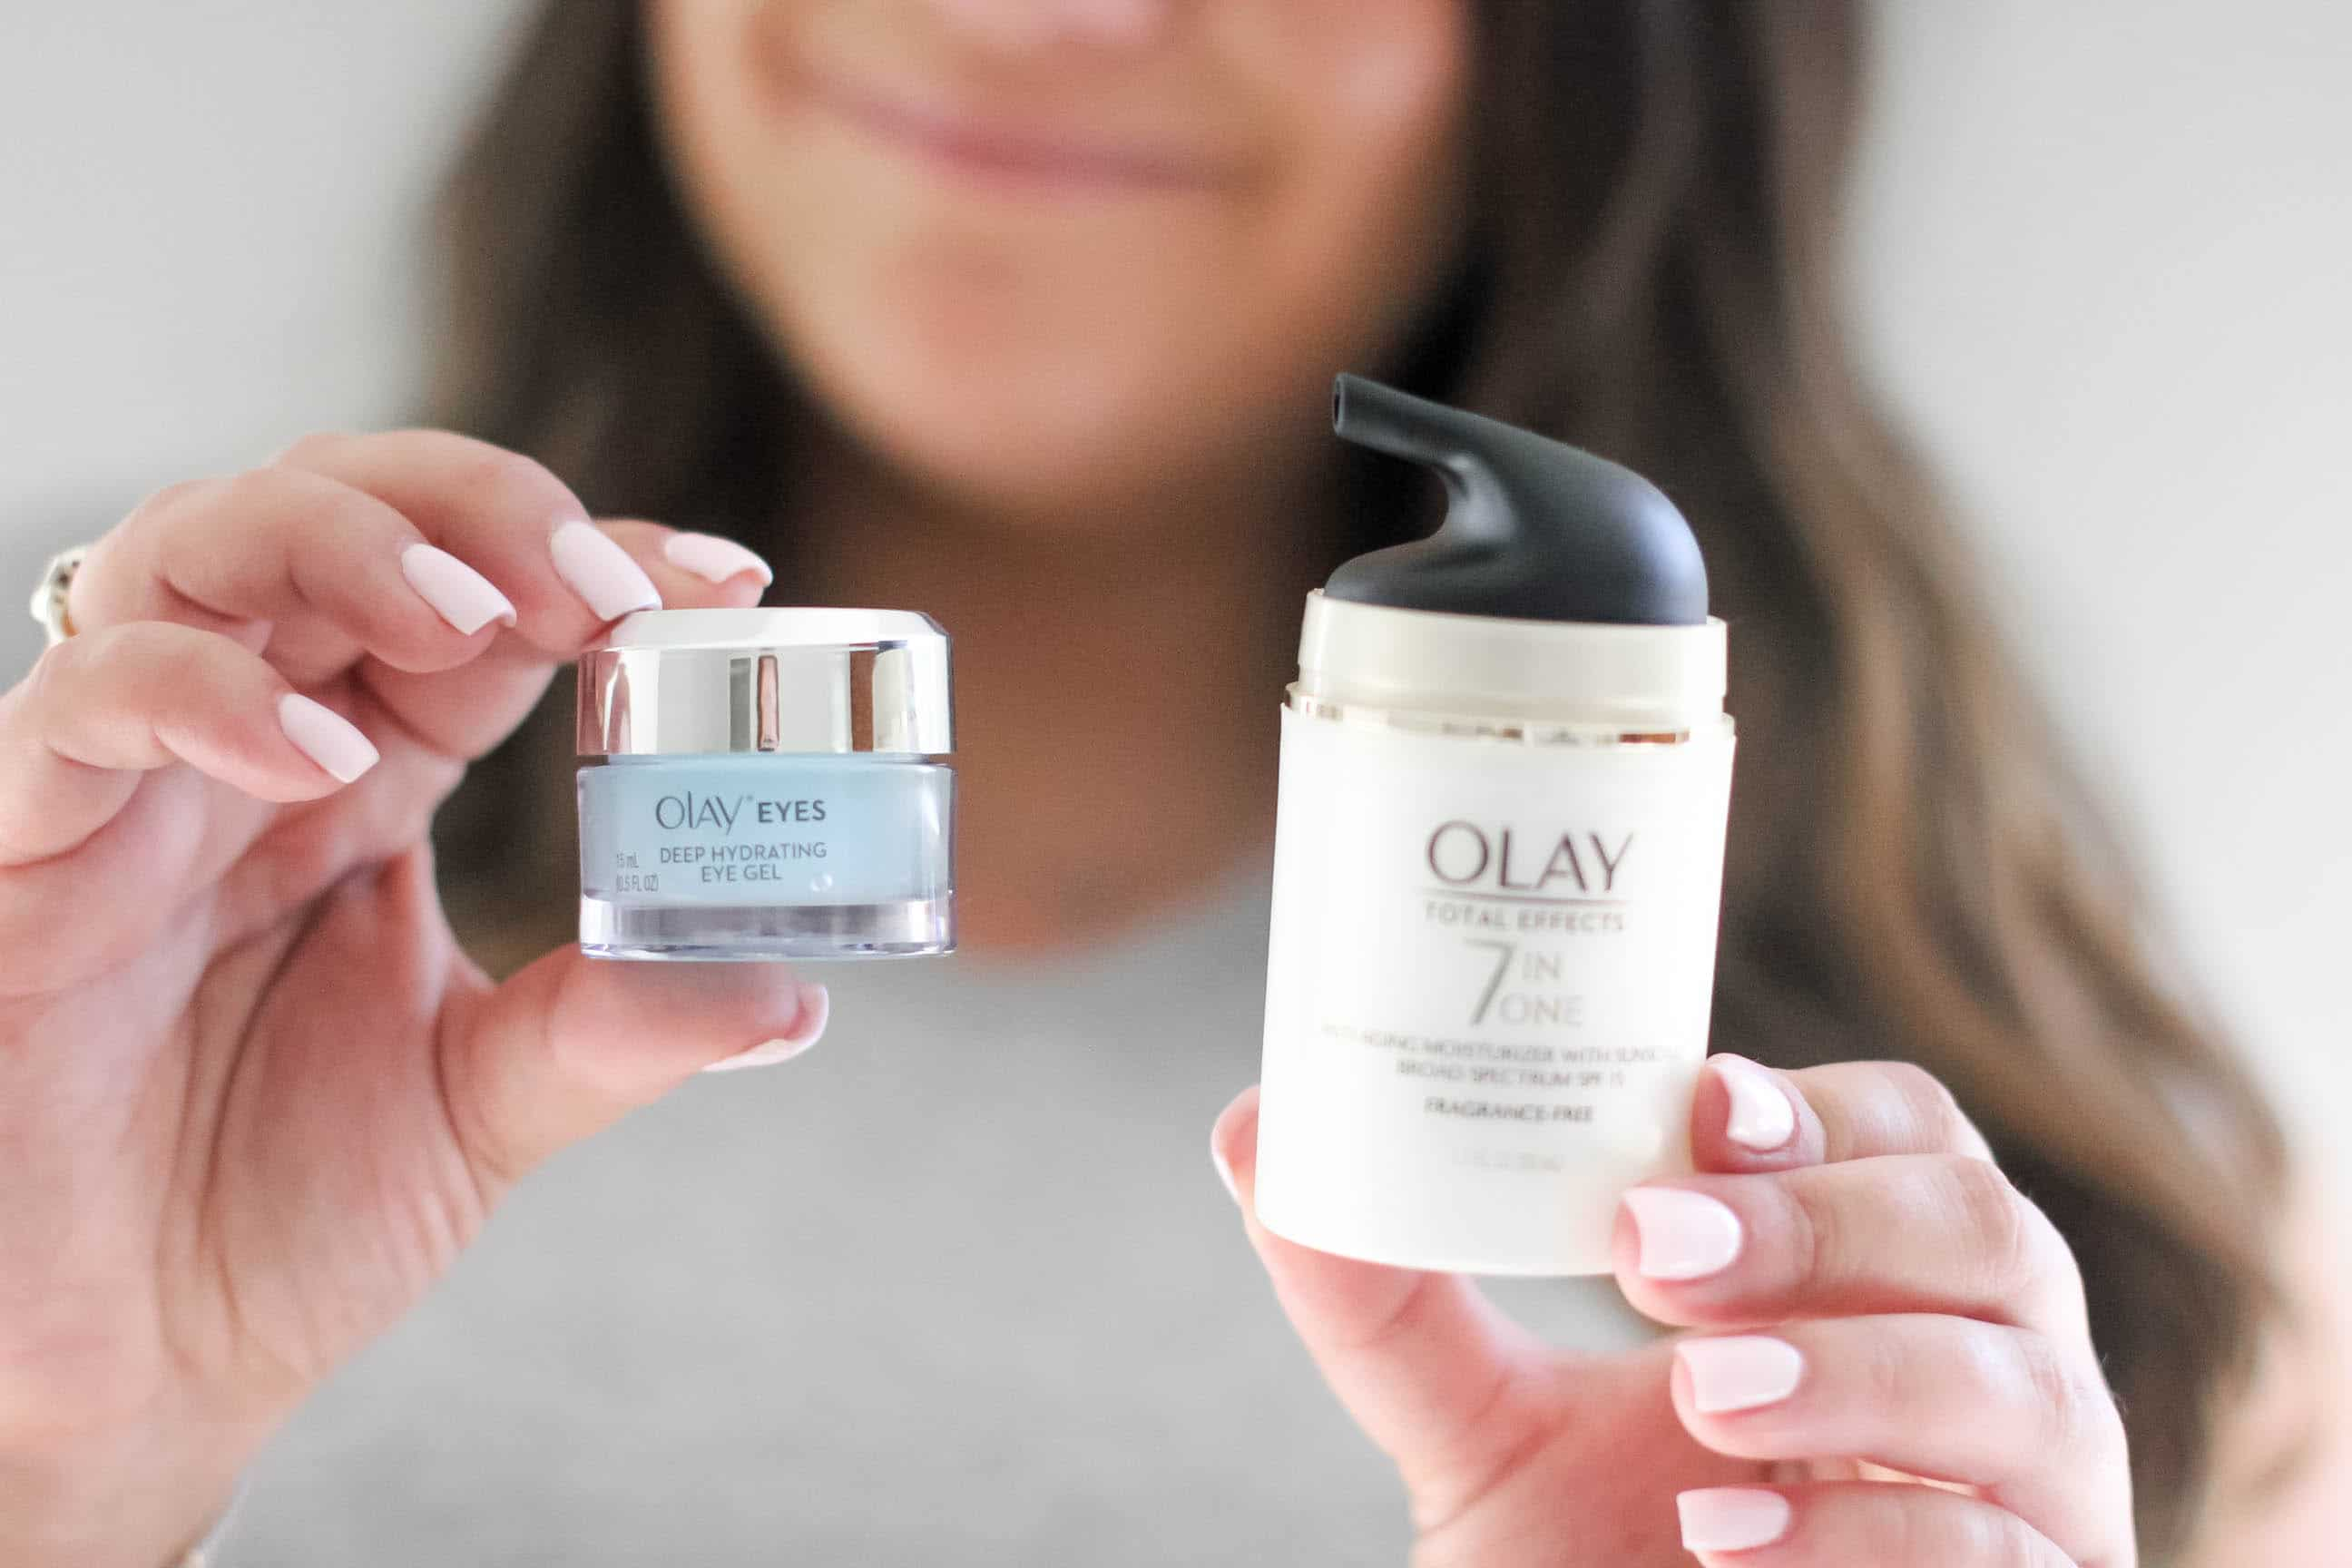 olay, olay 28 day challenge, beauty blog, beauty blogger, skincare, skincare regimen, skincare routine, skincare review, skincare products, olay skincare, olay moisturizer, olay moisturizer, bloglovin, beauty buys, beauty tips, beauty reviews, skincare tips, la blogger,